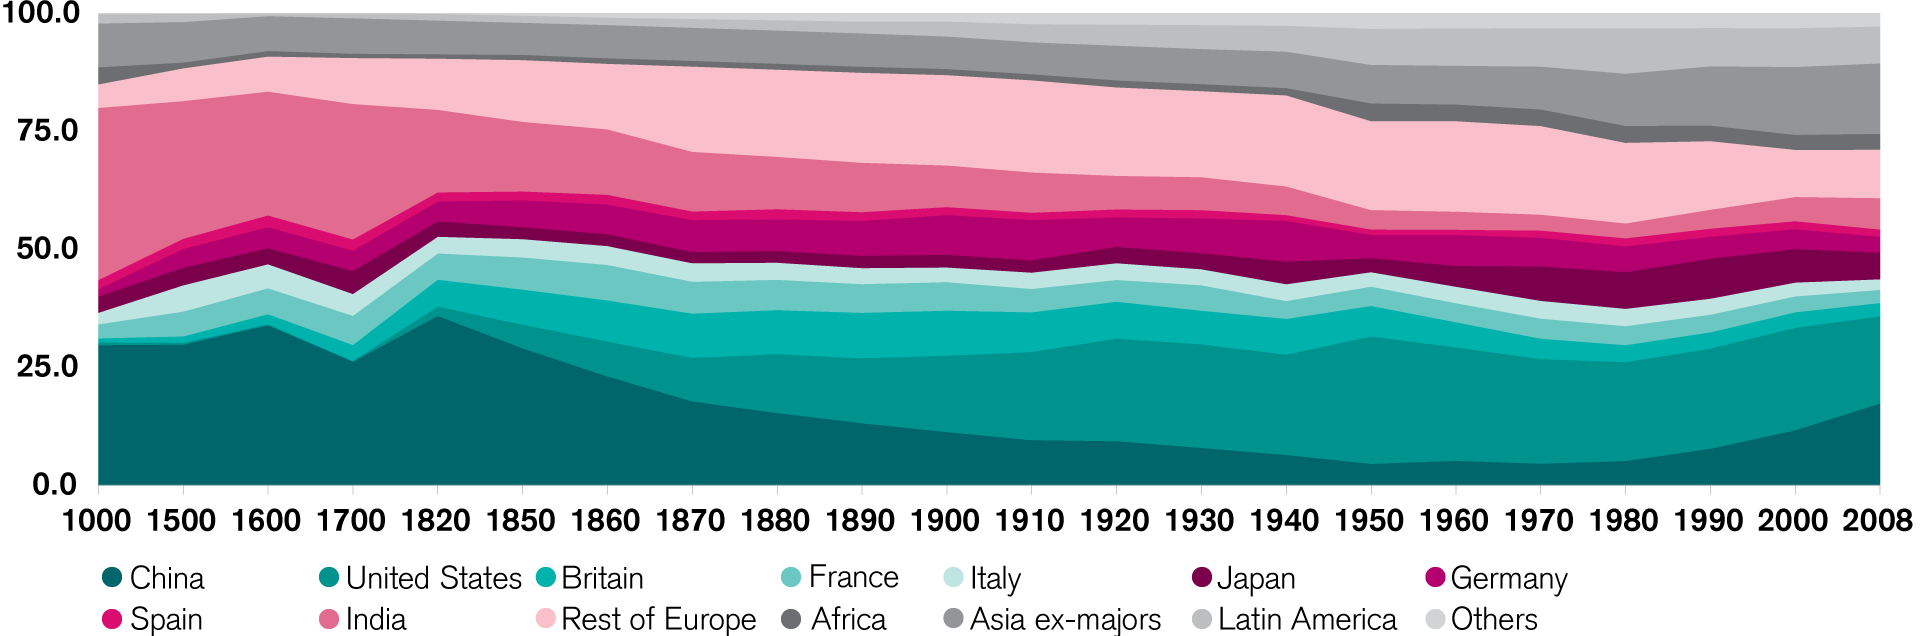 A Historical Perspective of Global Shares of GDP